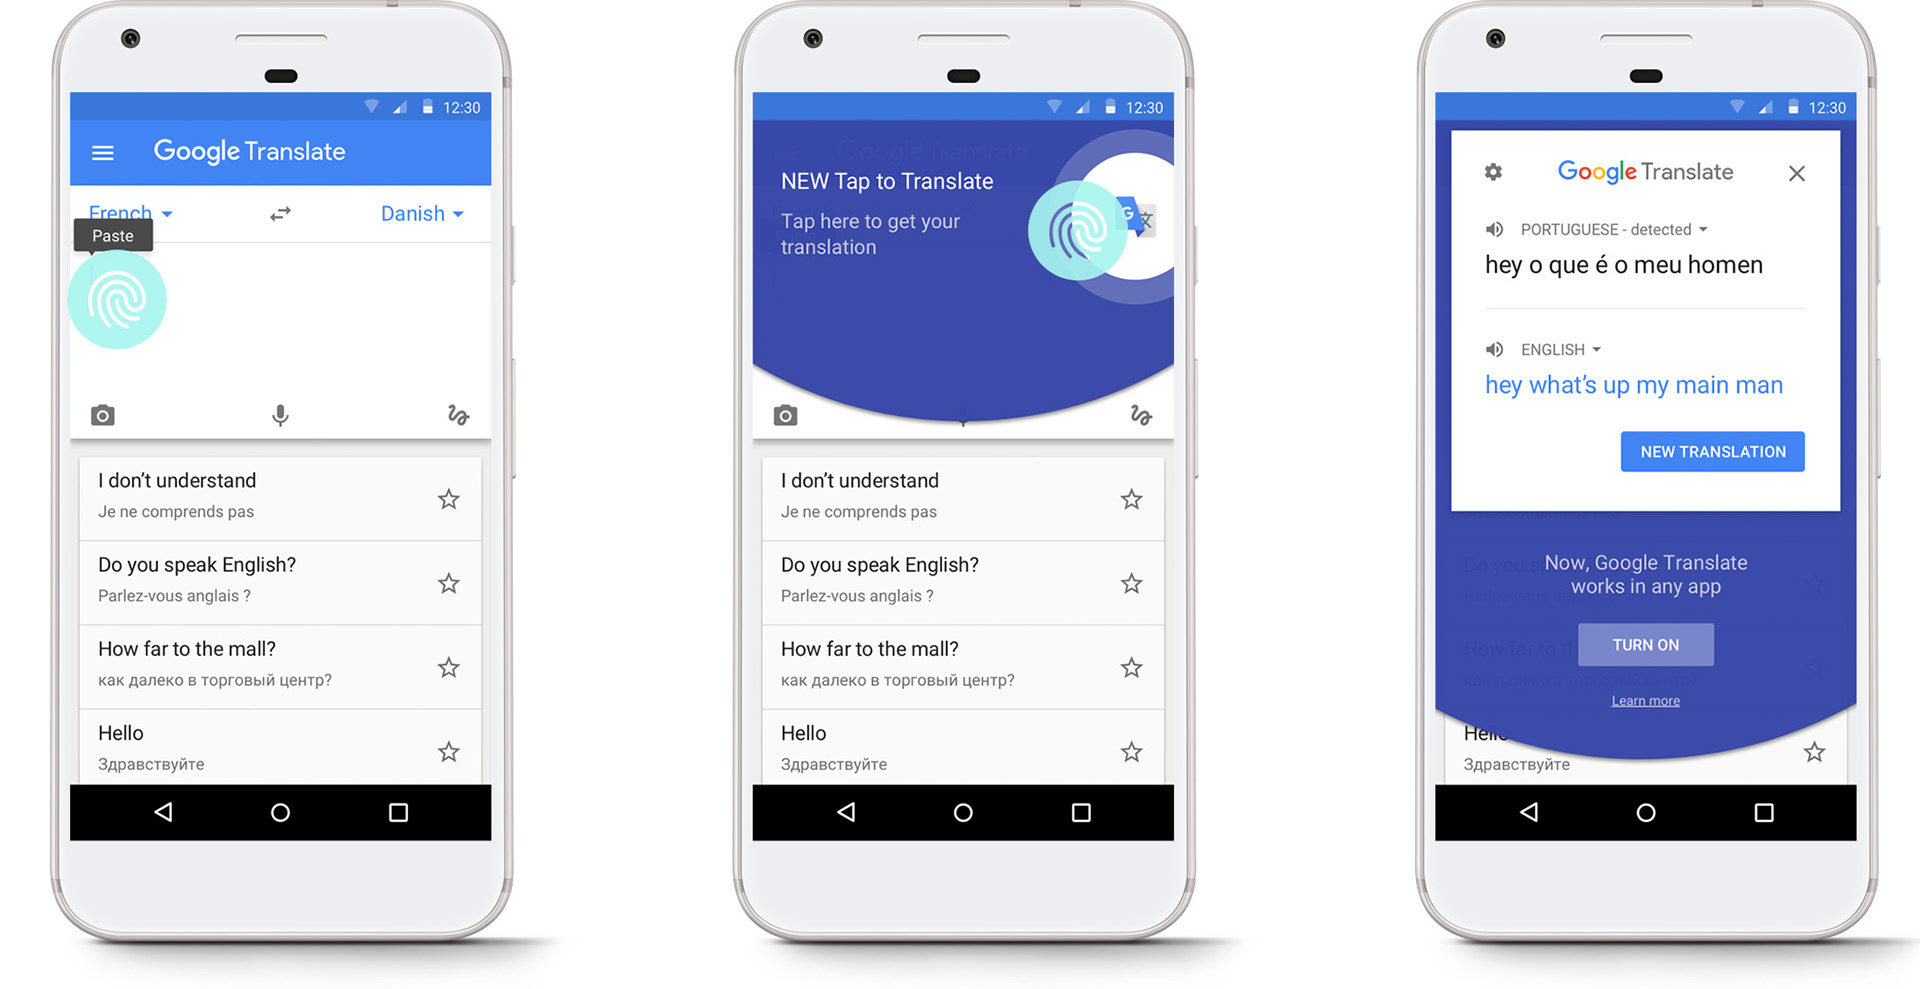 af3e3c22f5 This contextual feature promotion completely outperformed our static promo  card on the home screen and is how most Google Translate users discover Tap  to ...